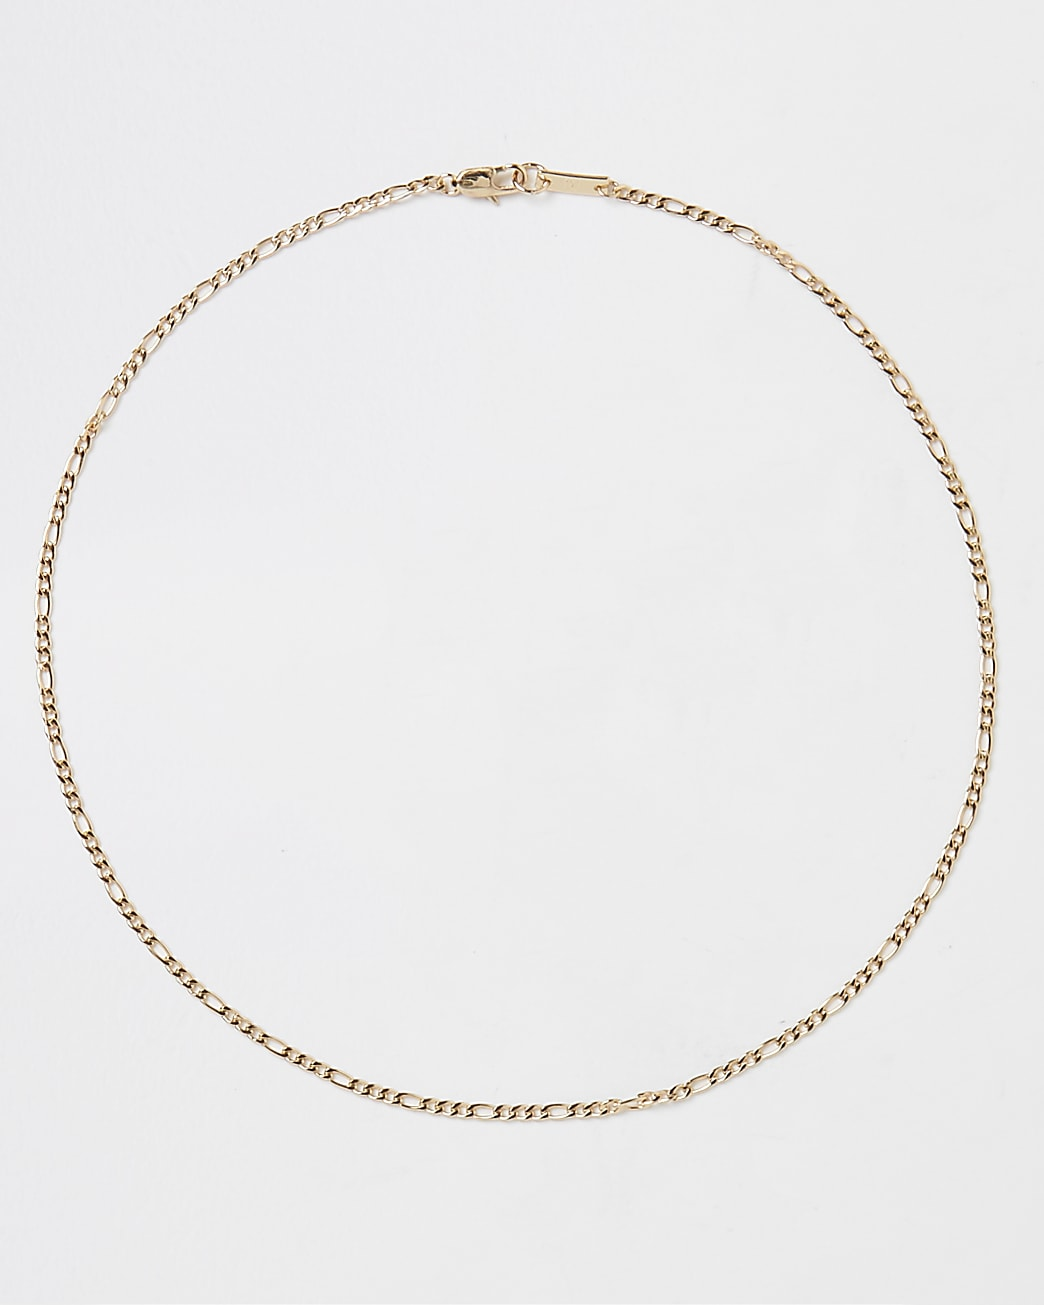 Gold stainless steel chain necklace